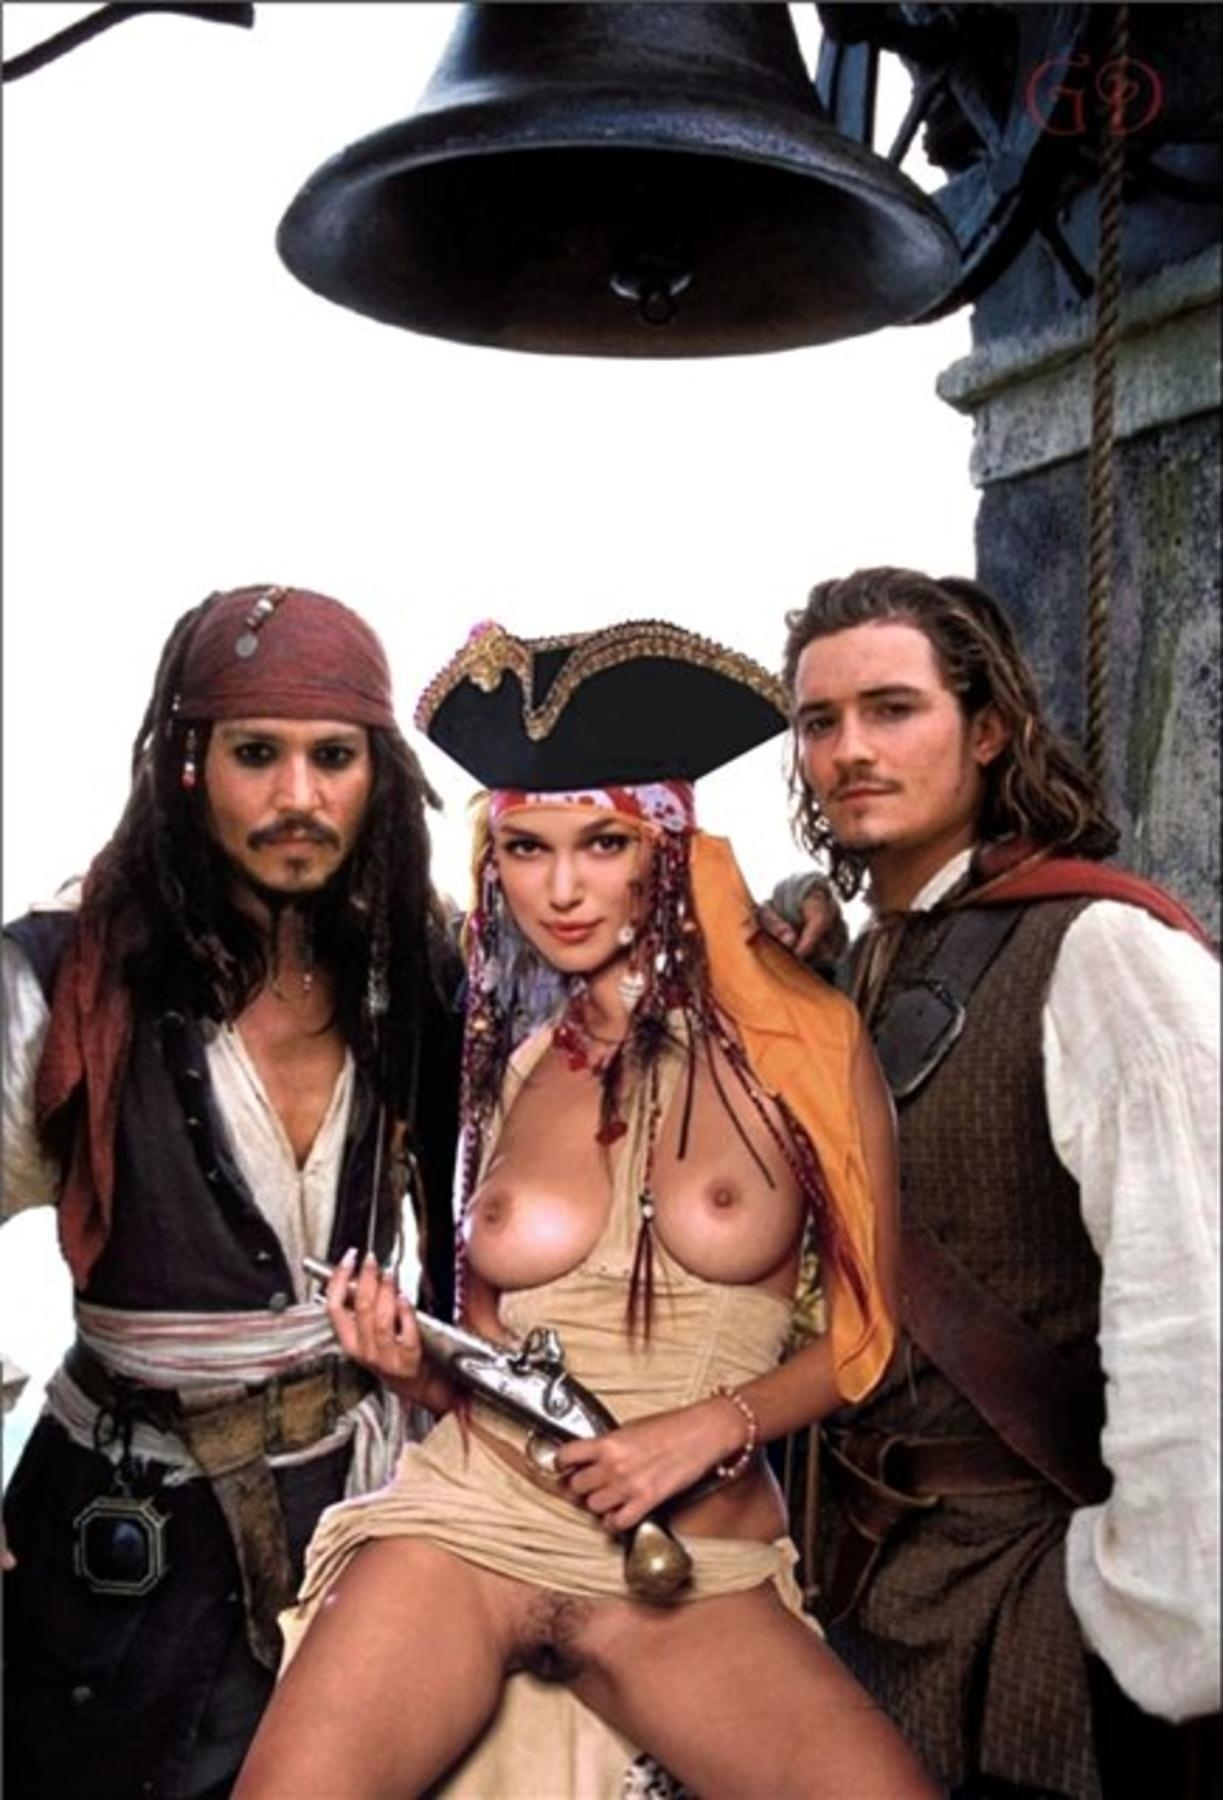 Naked sexy pirate photos nude images